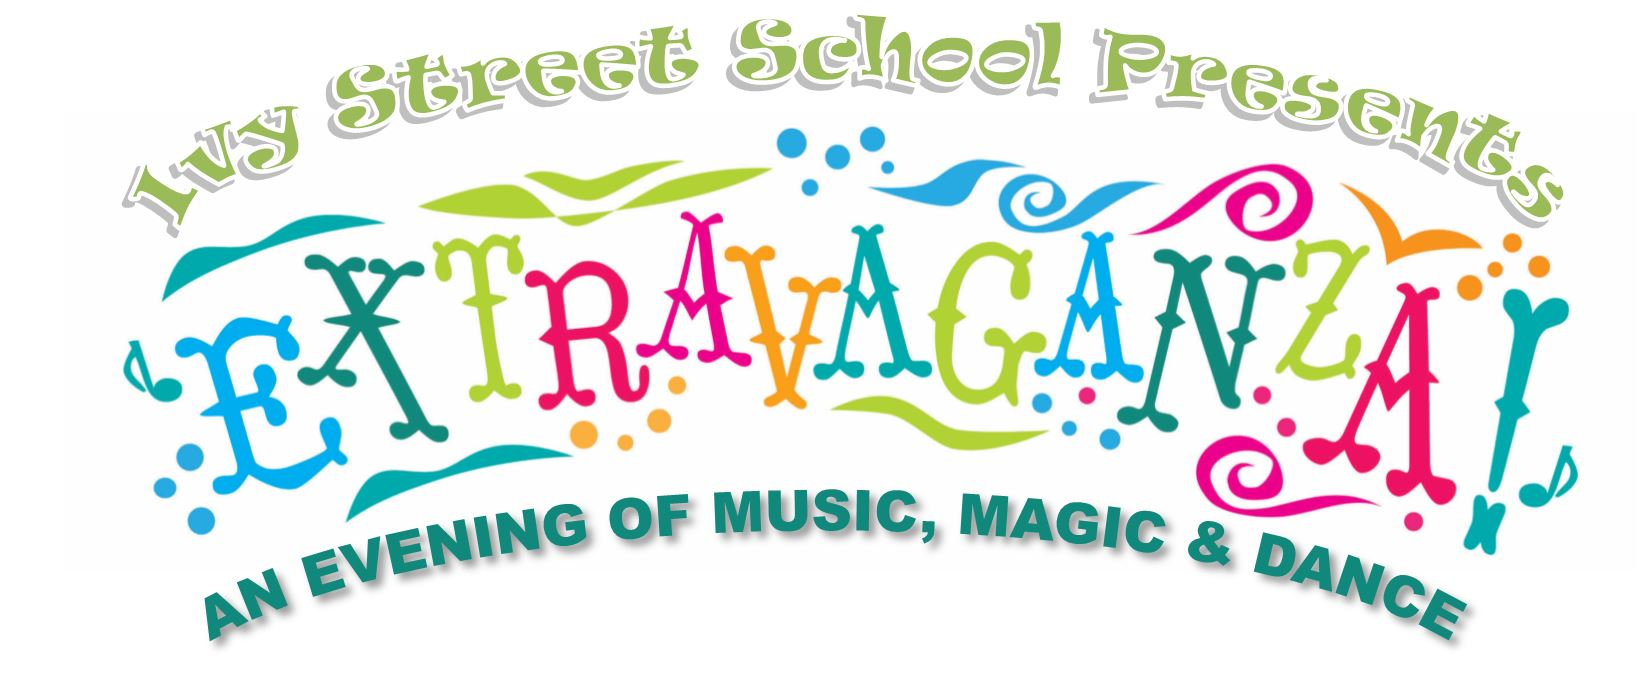 Extravaganza logo Isvy St School Presents and evening of music magic and dance